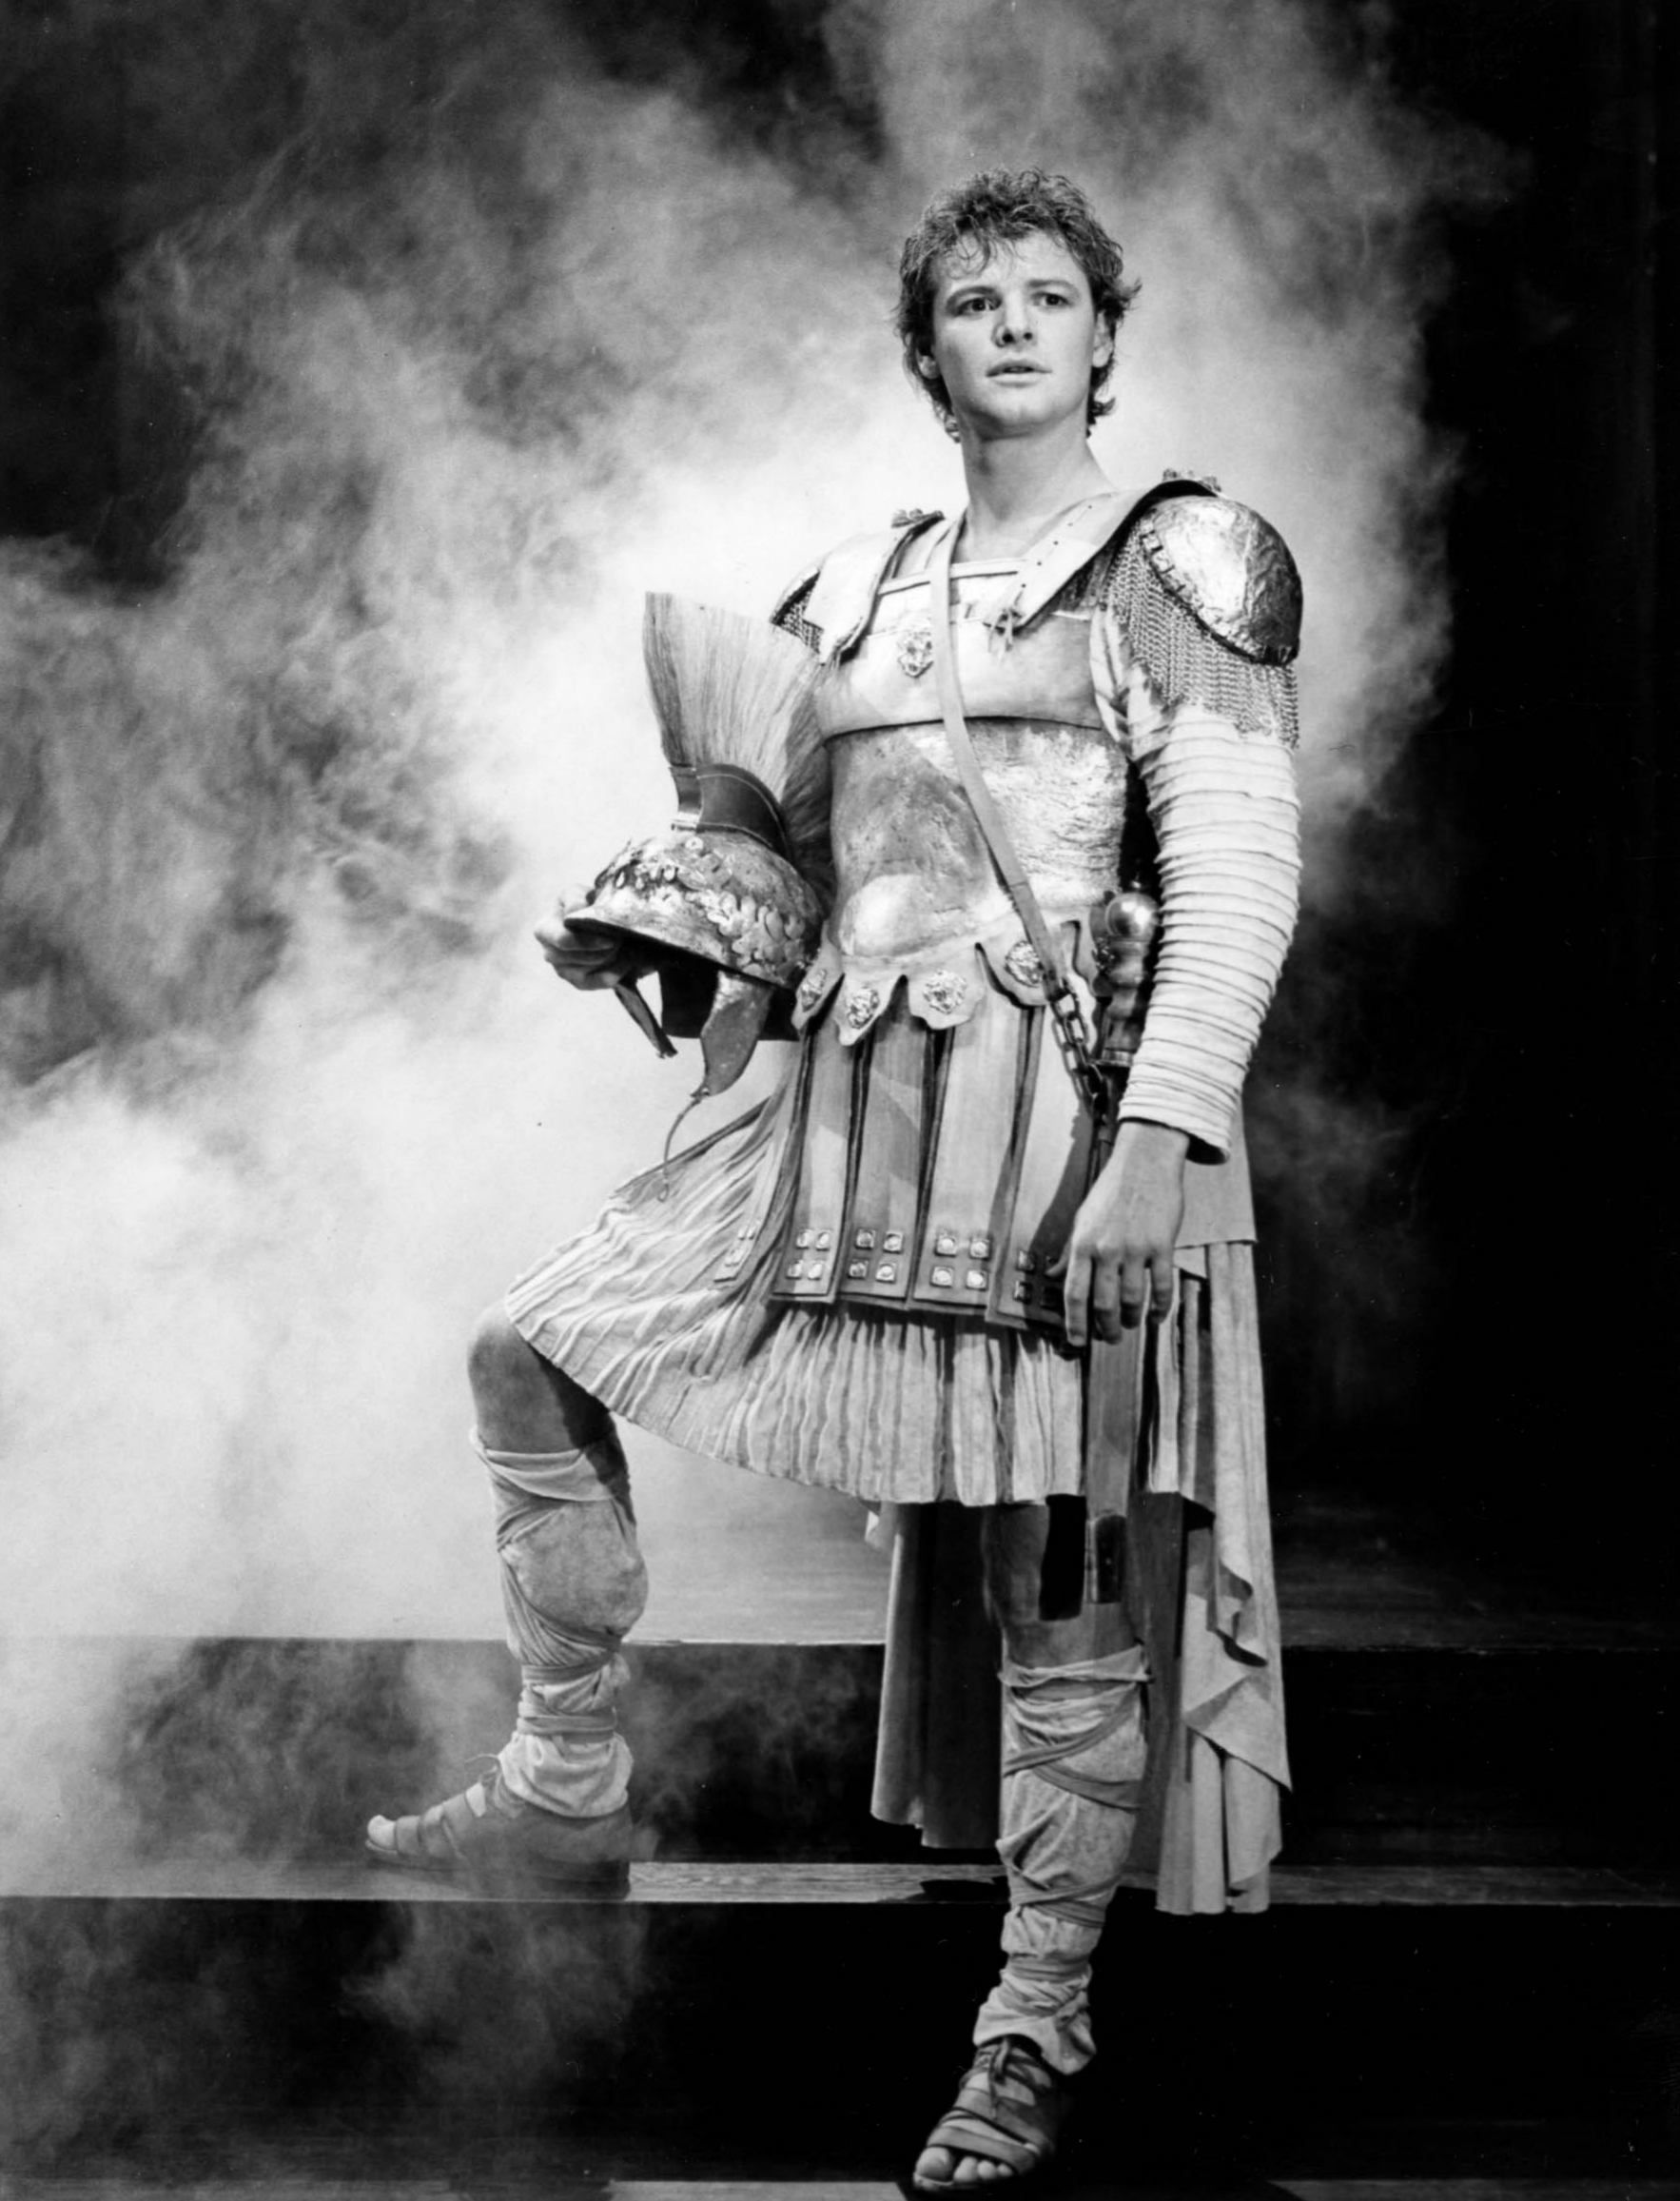 stratford alec guinness as richard iii riii throwbackthursday to geraint wyn davies as pericles in our 1986 production of this riveting shakespeare